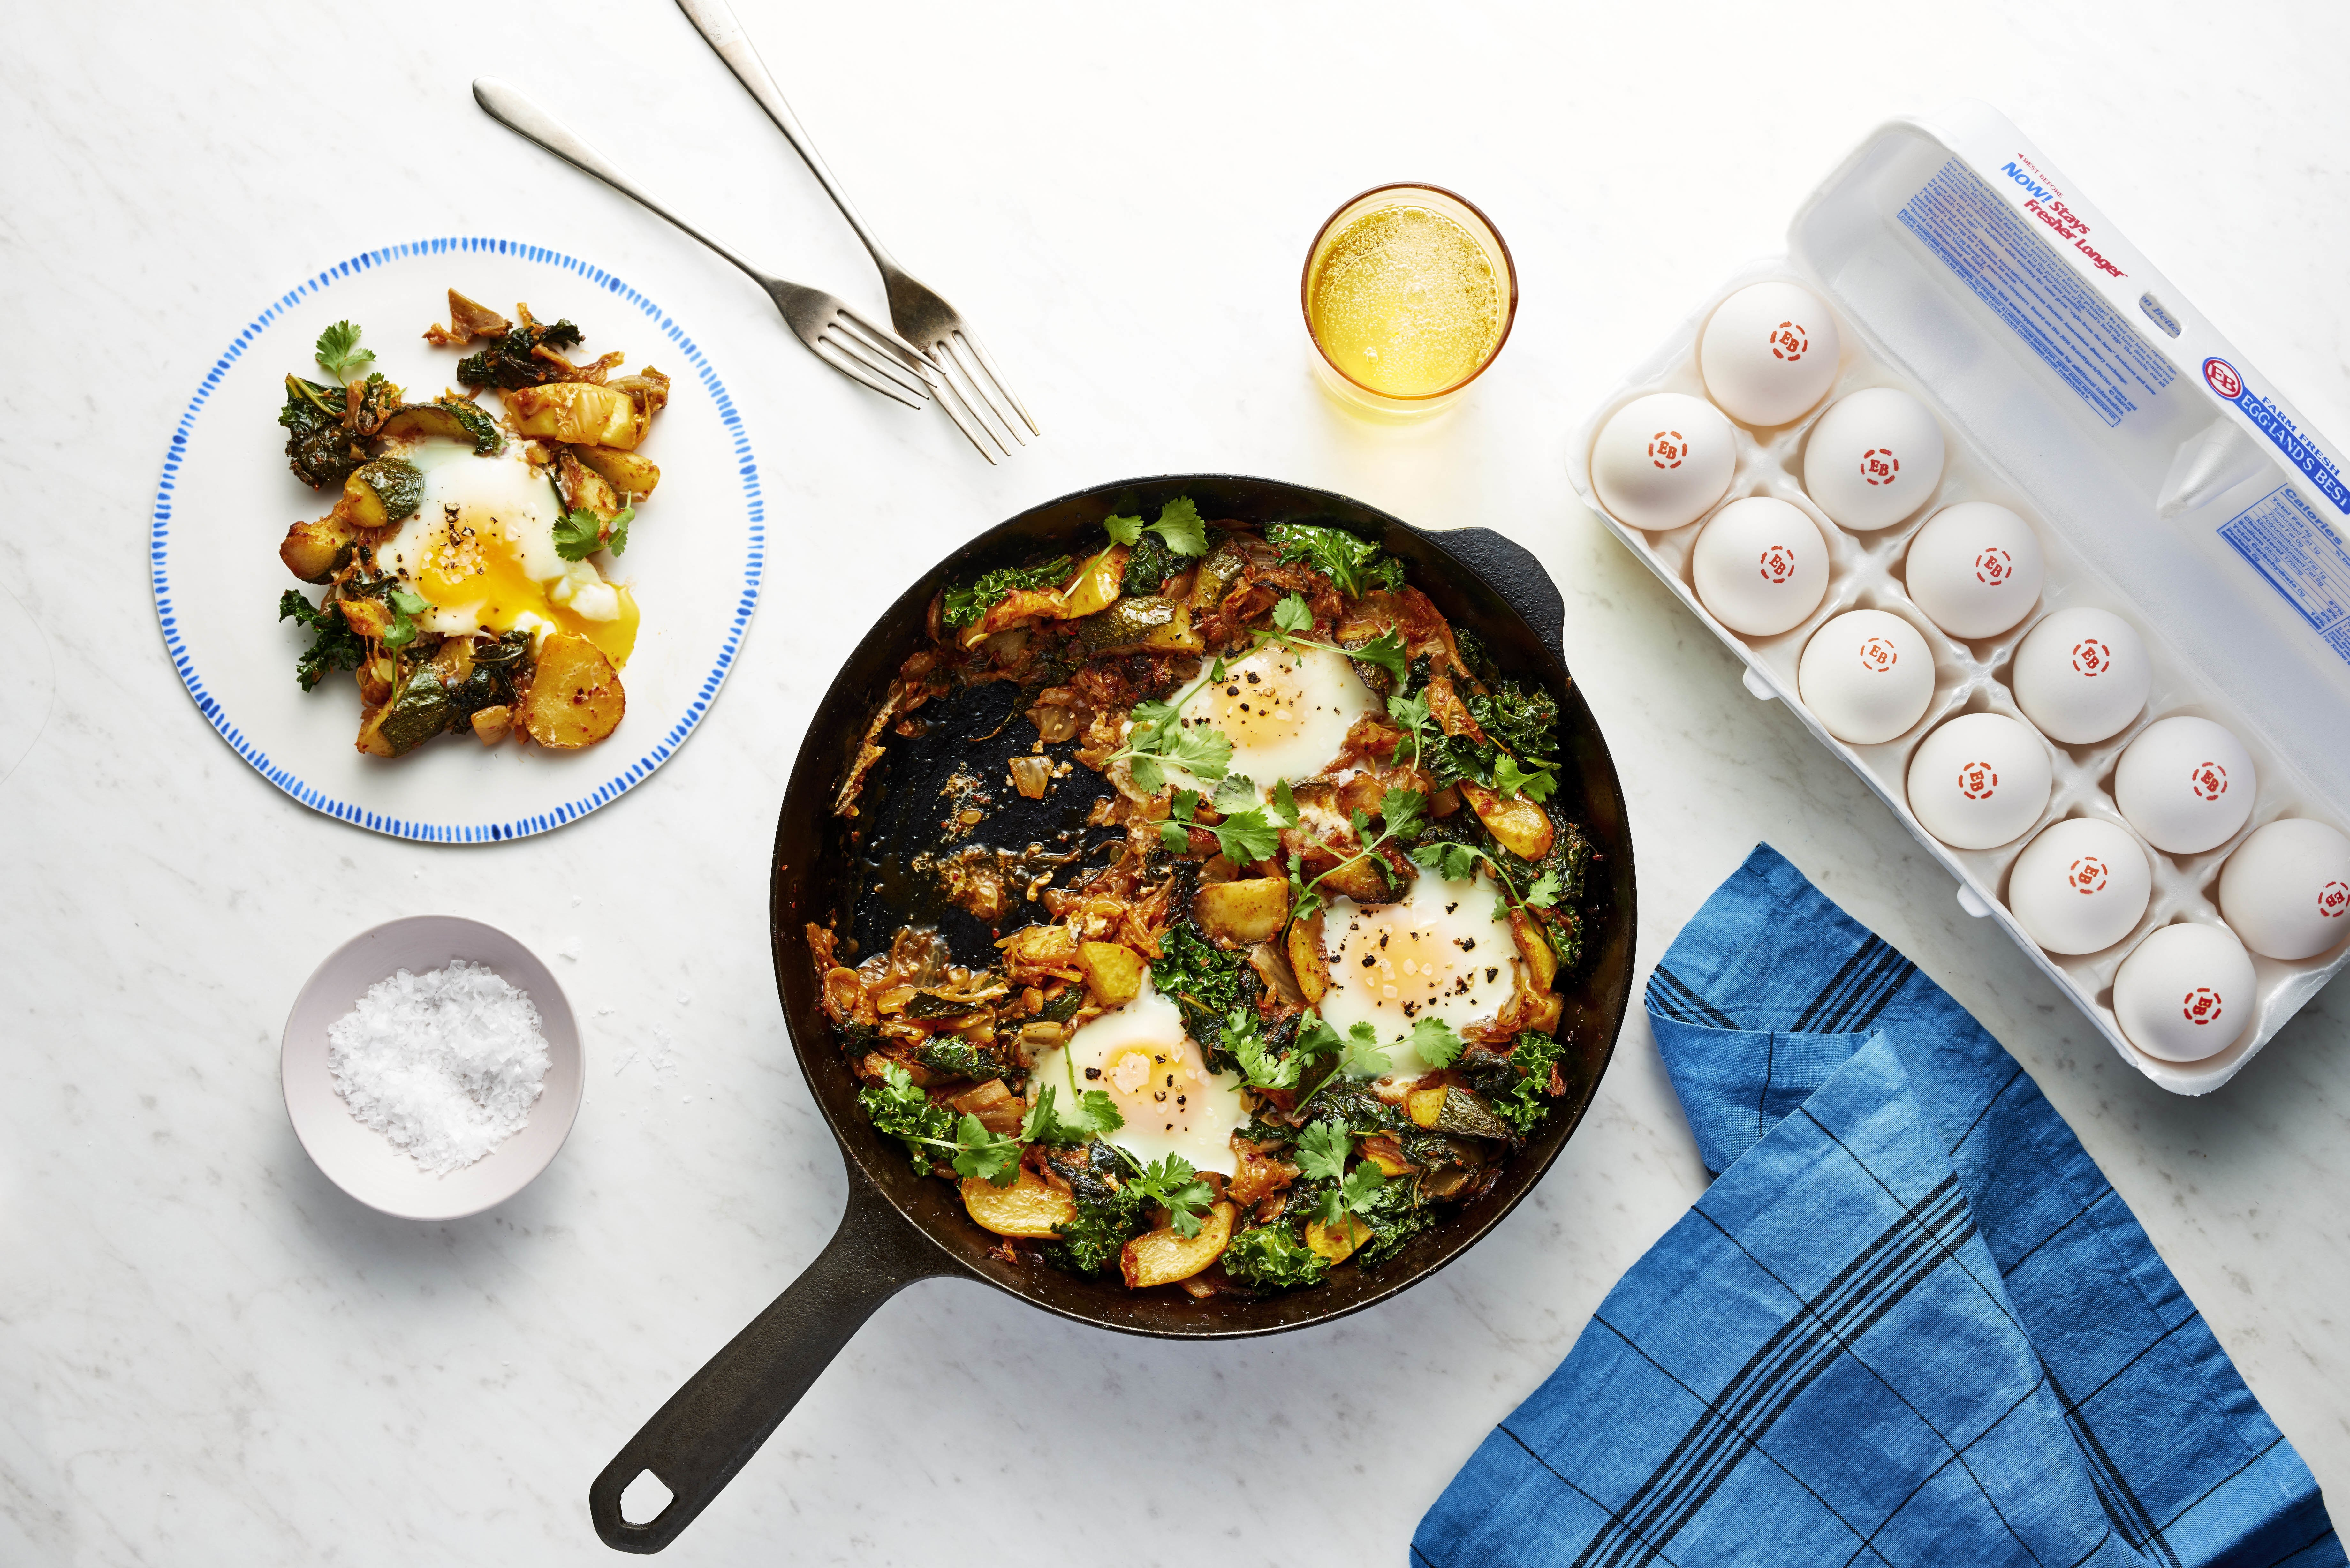 Kimchi and Summer Squash Baked Eggs